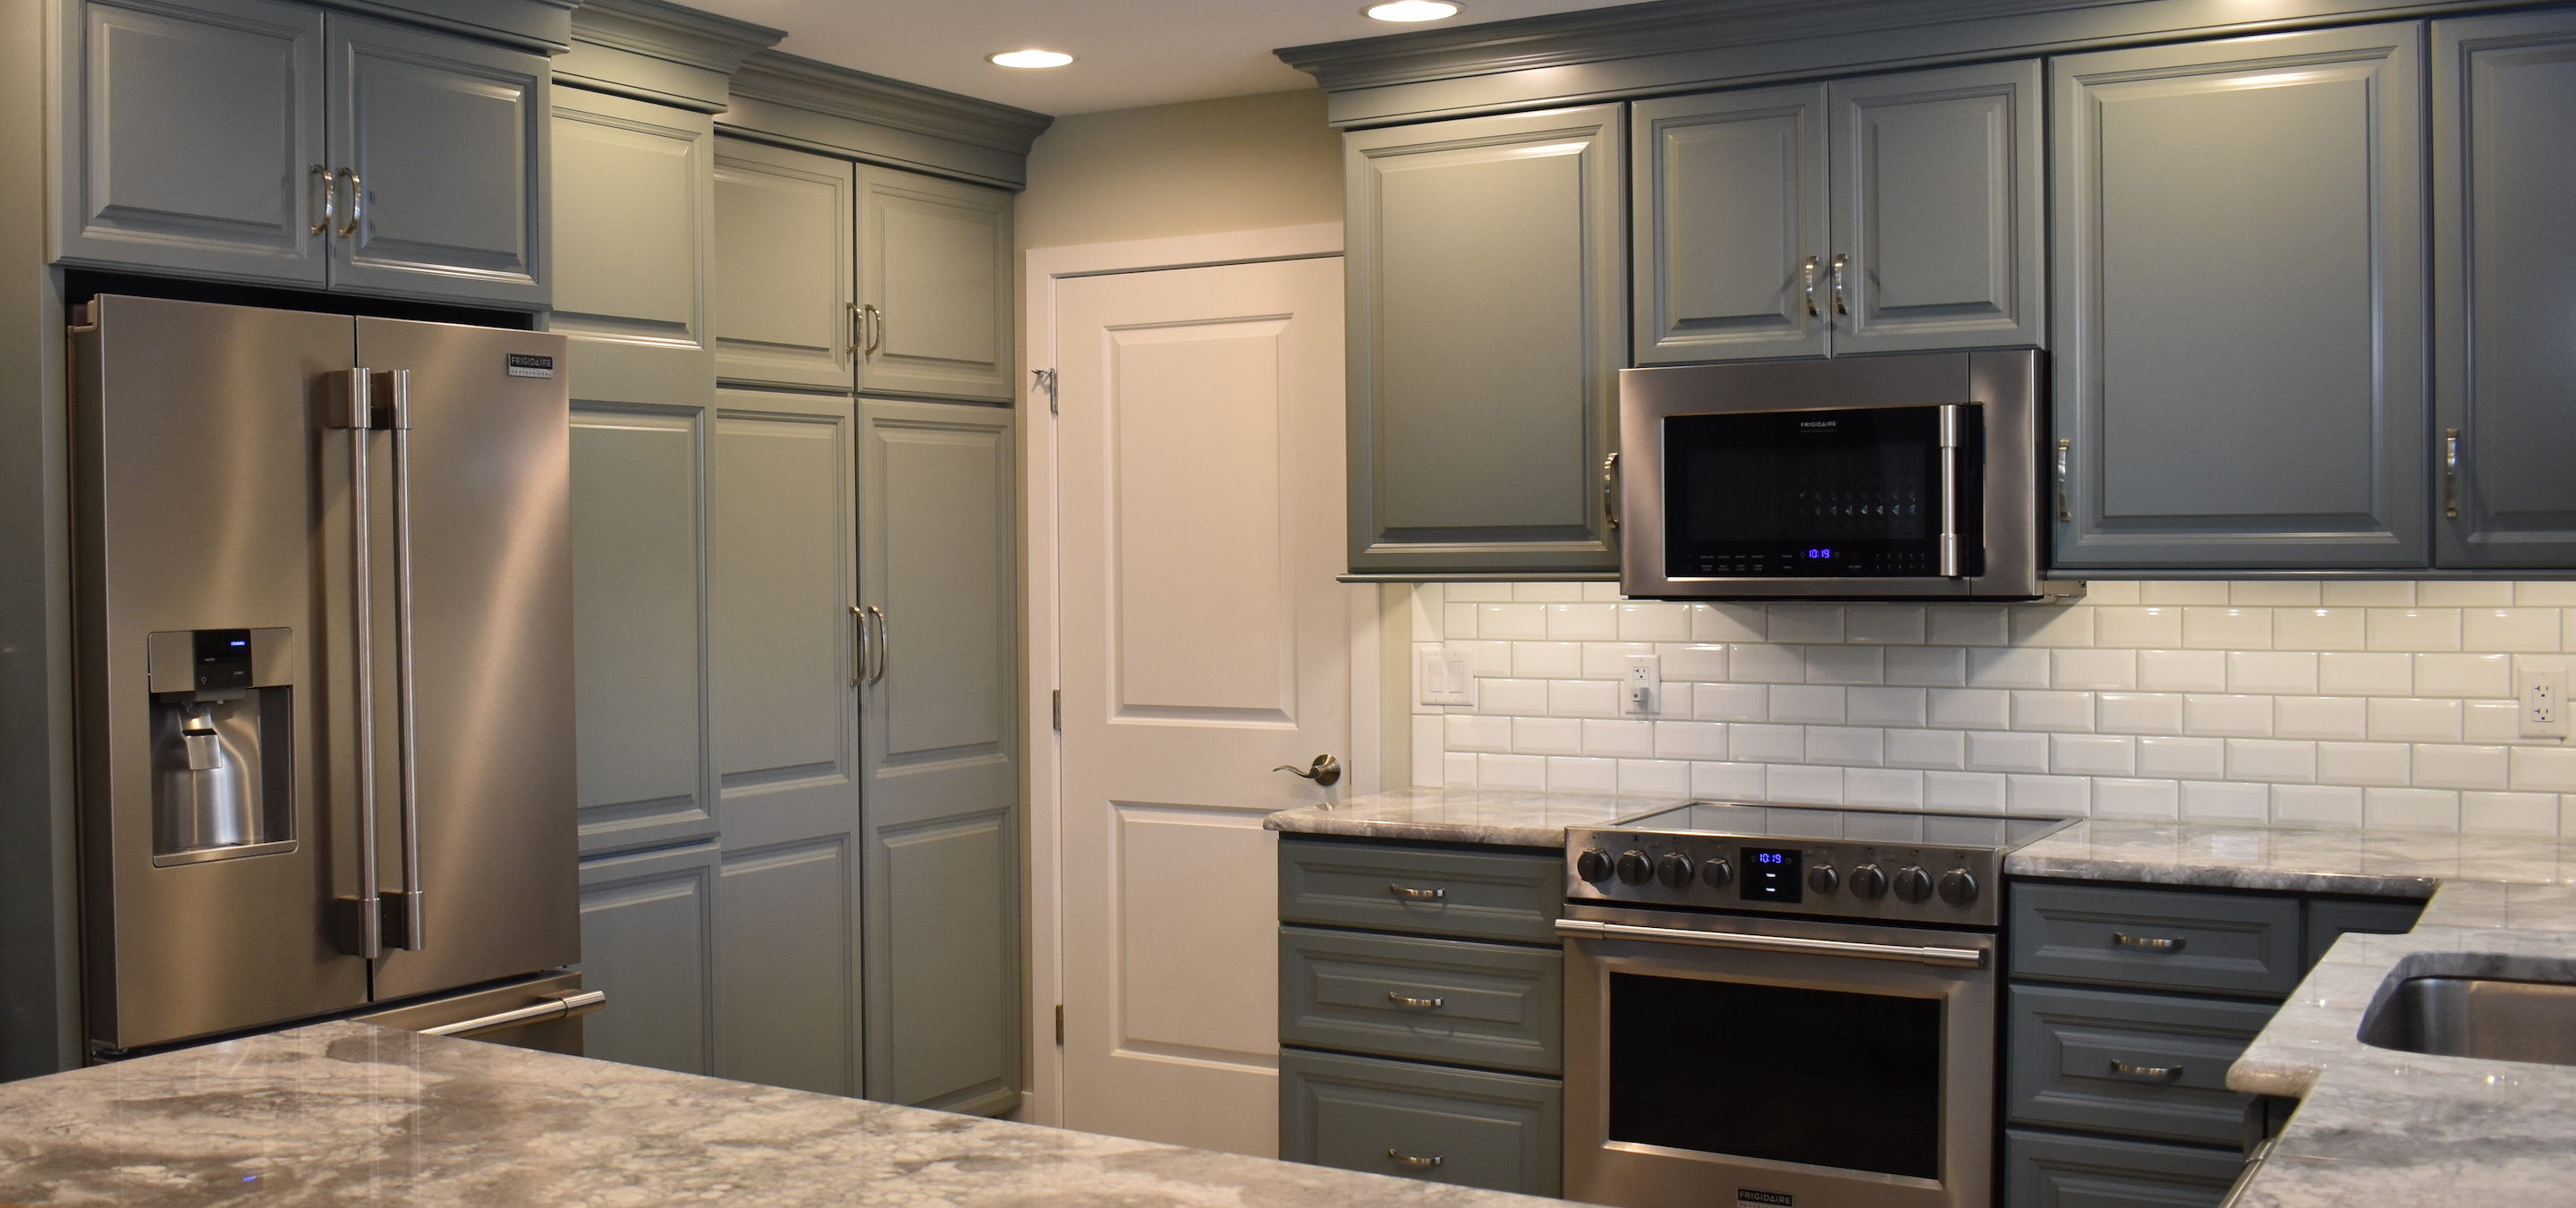 Rm kitchens inc custom cabinet makers installers in for Custom cabinet makers